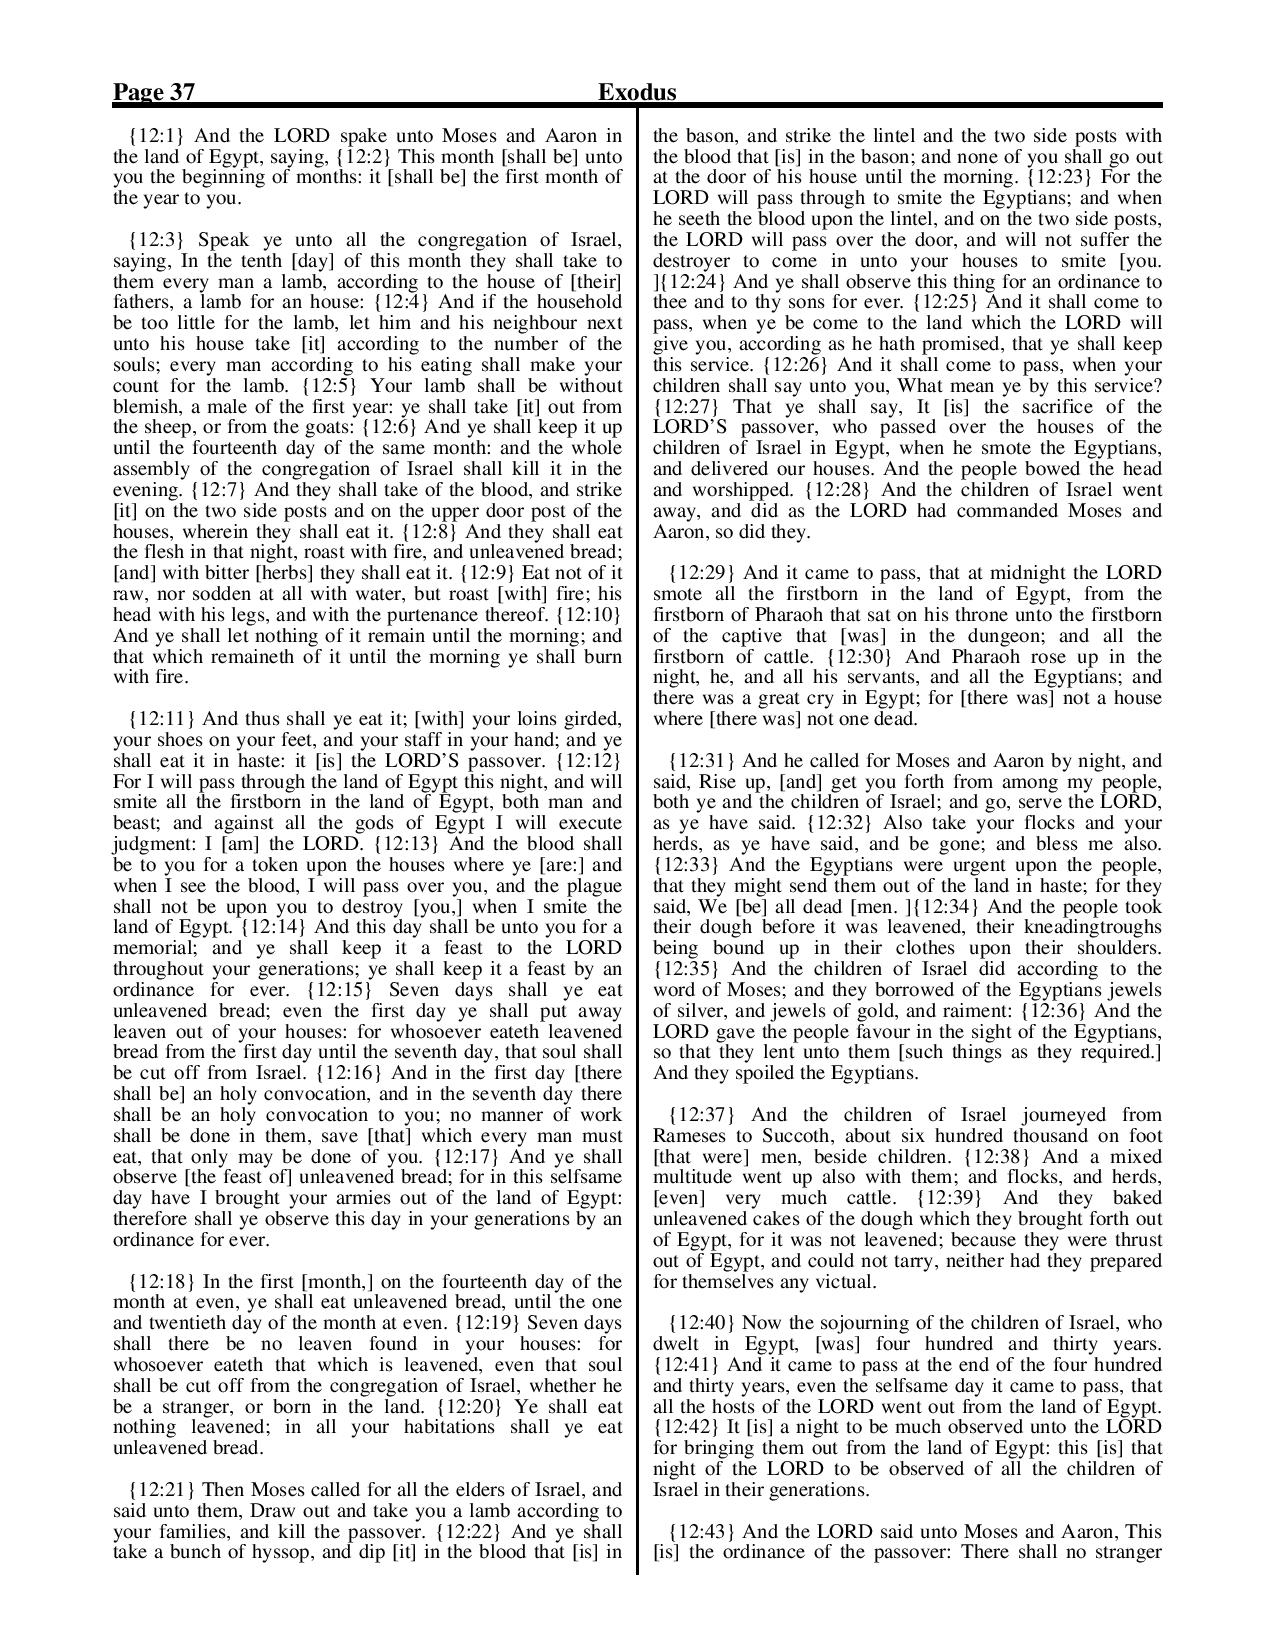 King-James-Bible-KJV-Bible-PDF-page-058